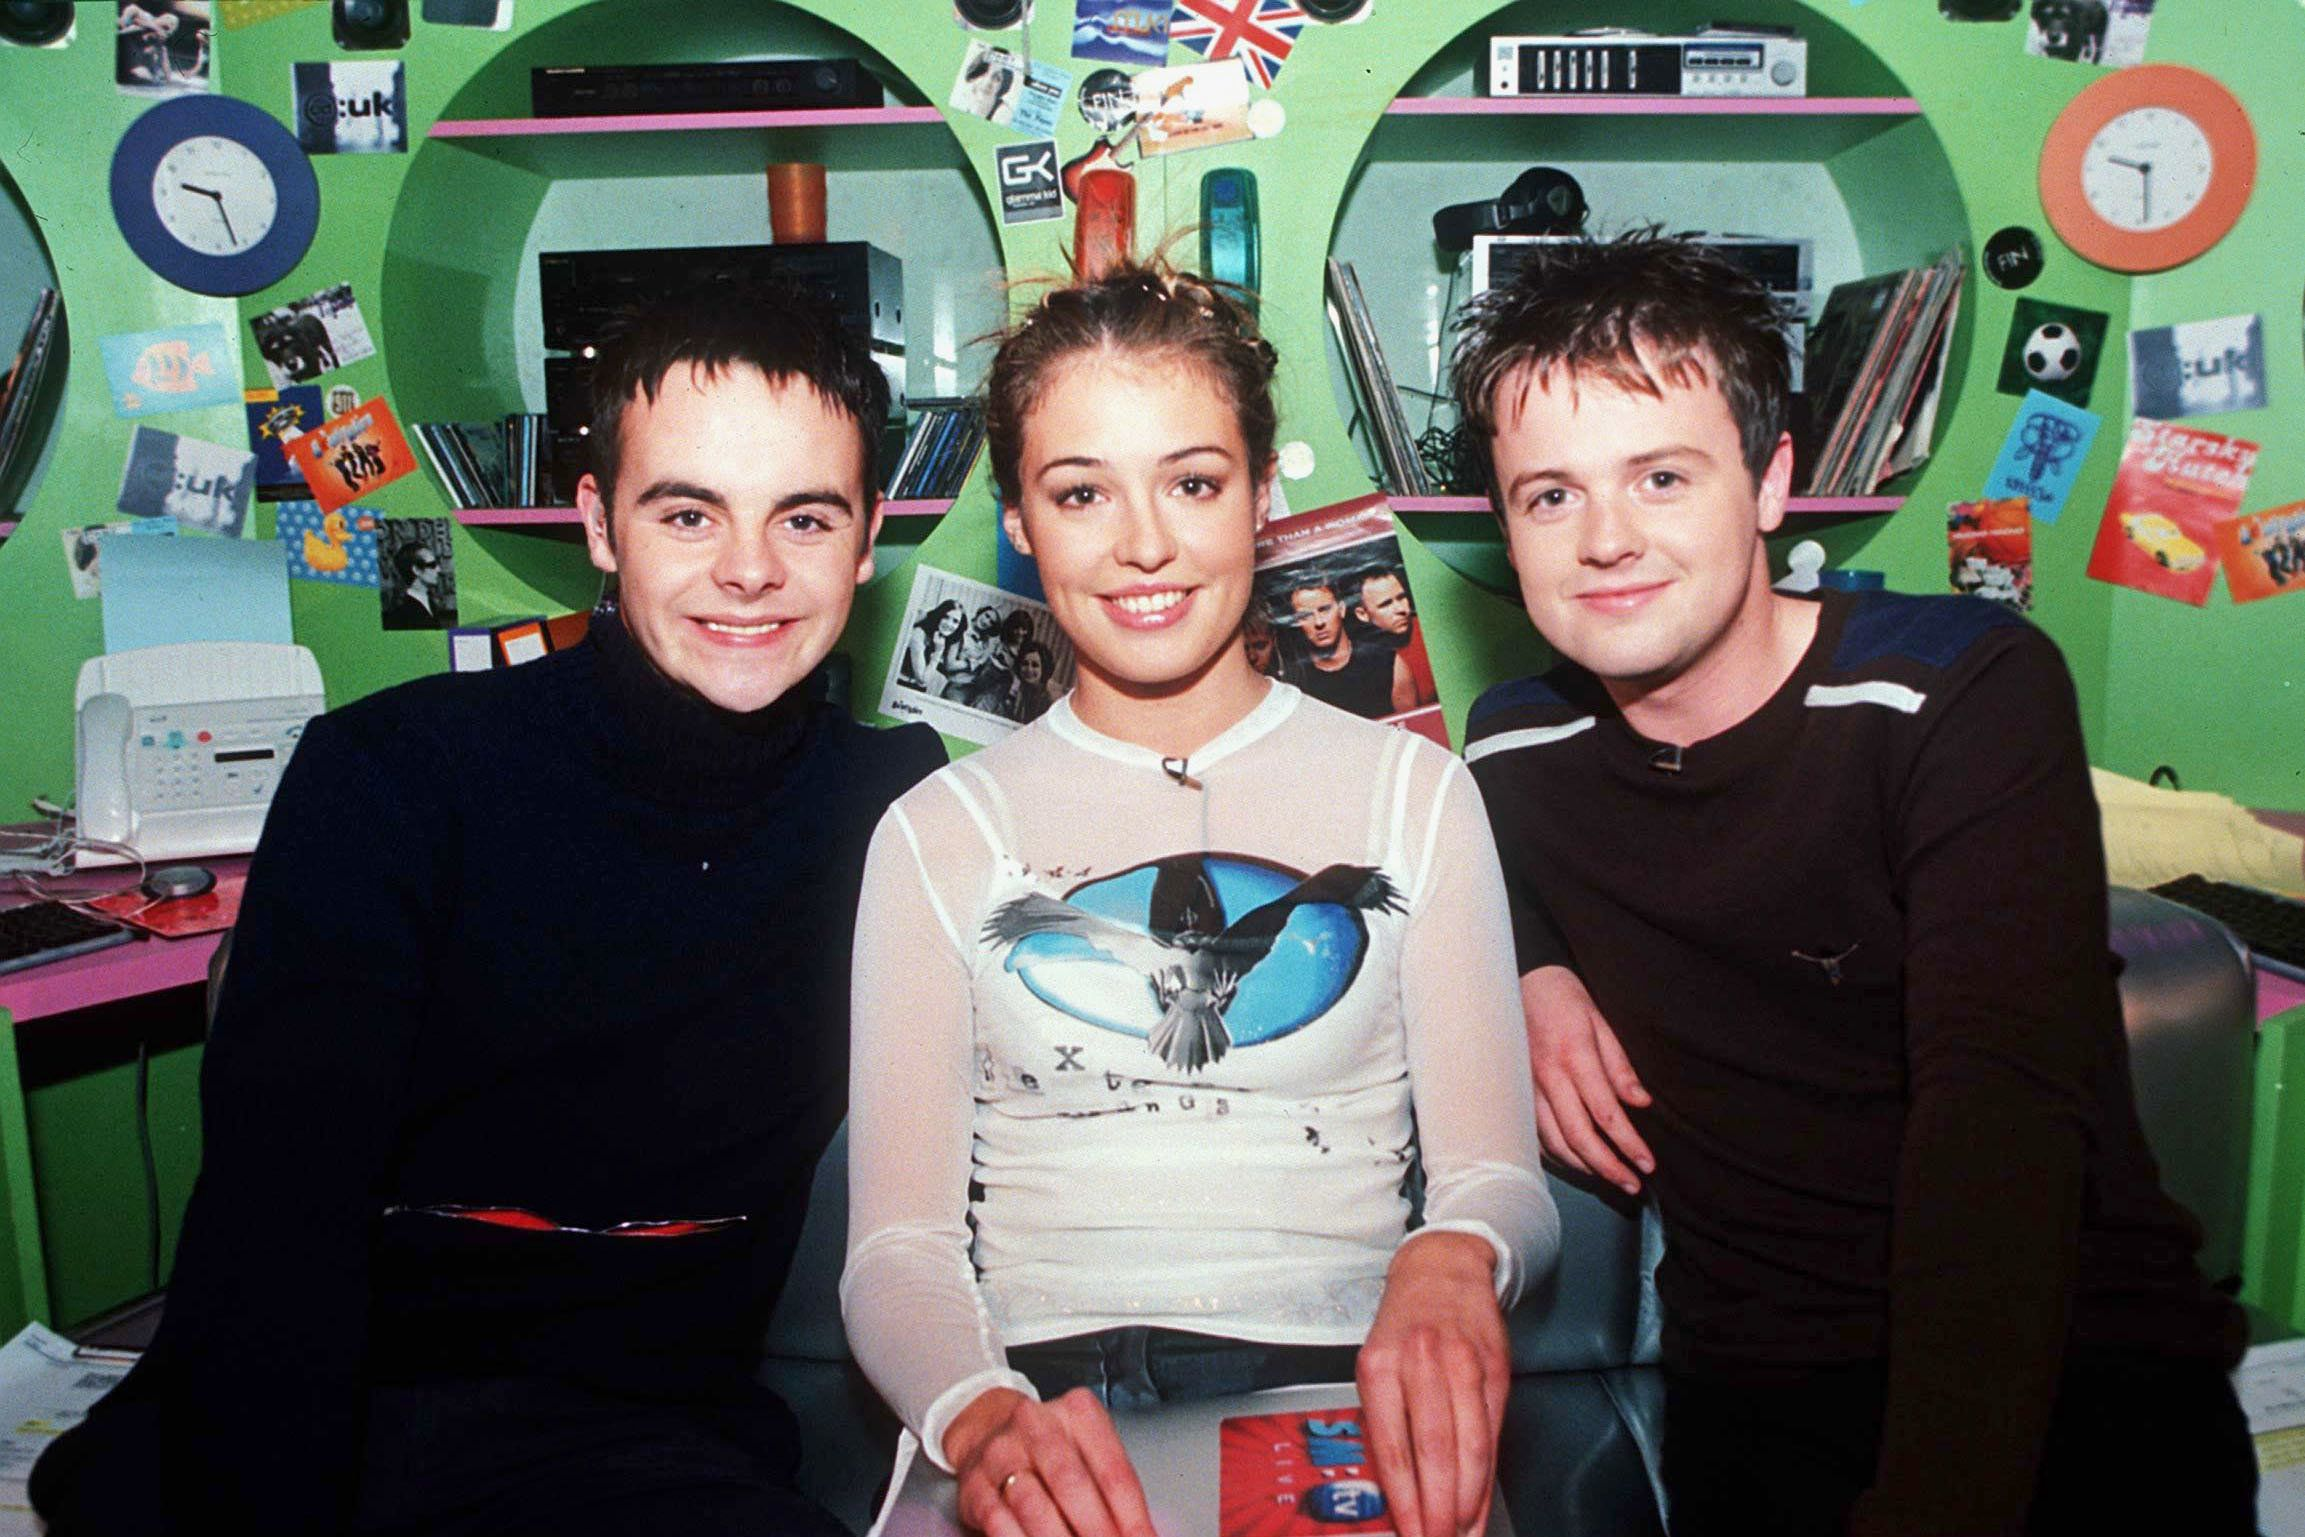 Ant and Dec are bringing back 'SM:TV Live' for a 20th anniversary